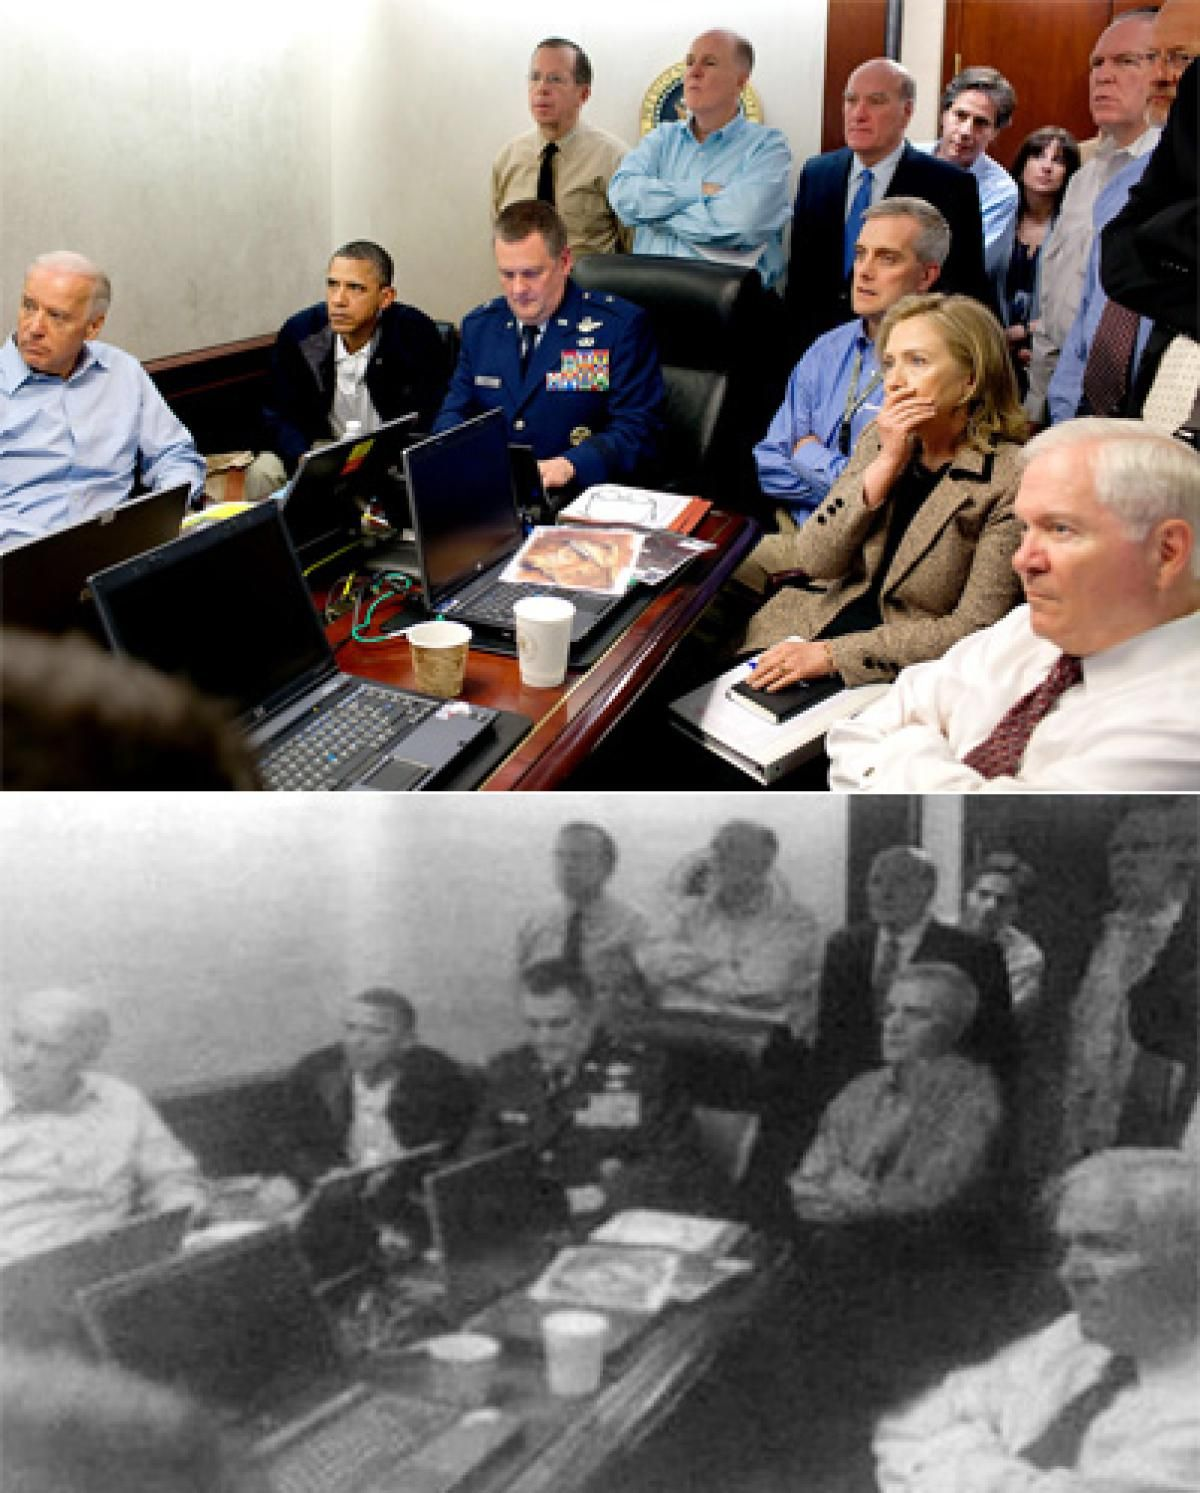 The Situation Room - Photos - Celeb Photoshop mishaps | Iconic photos